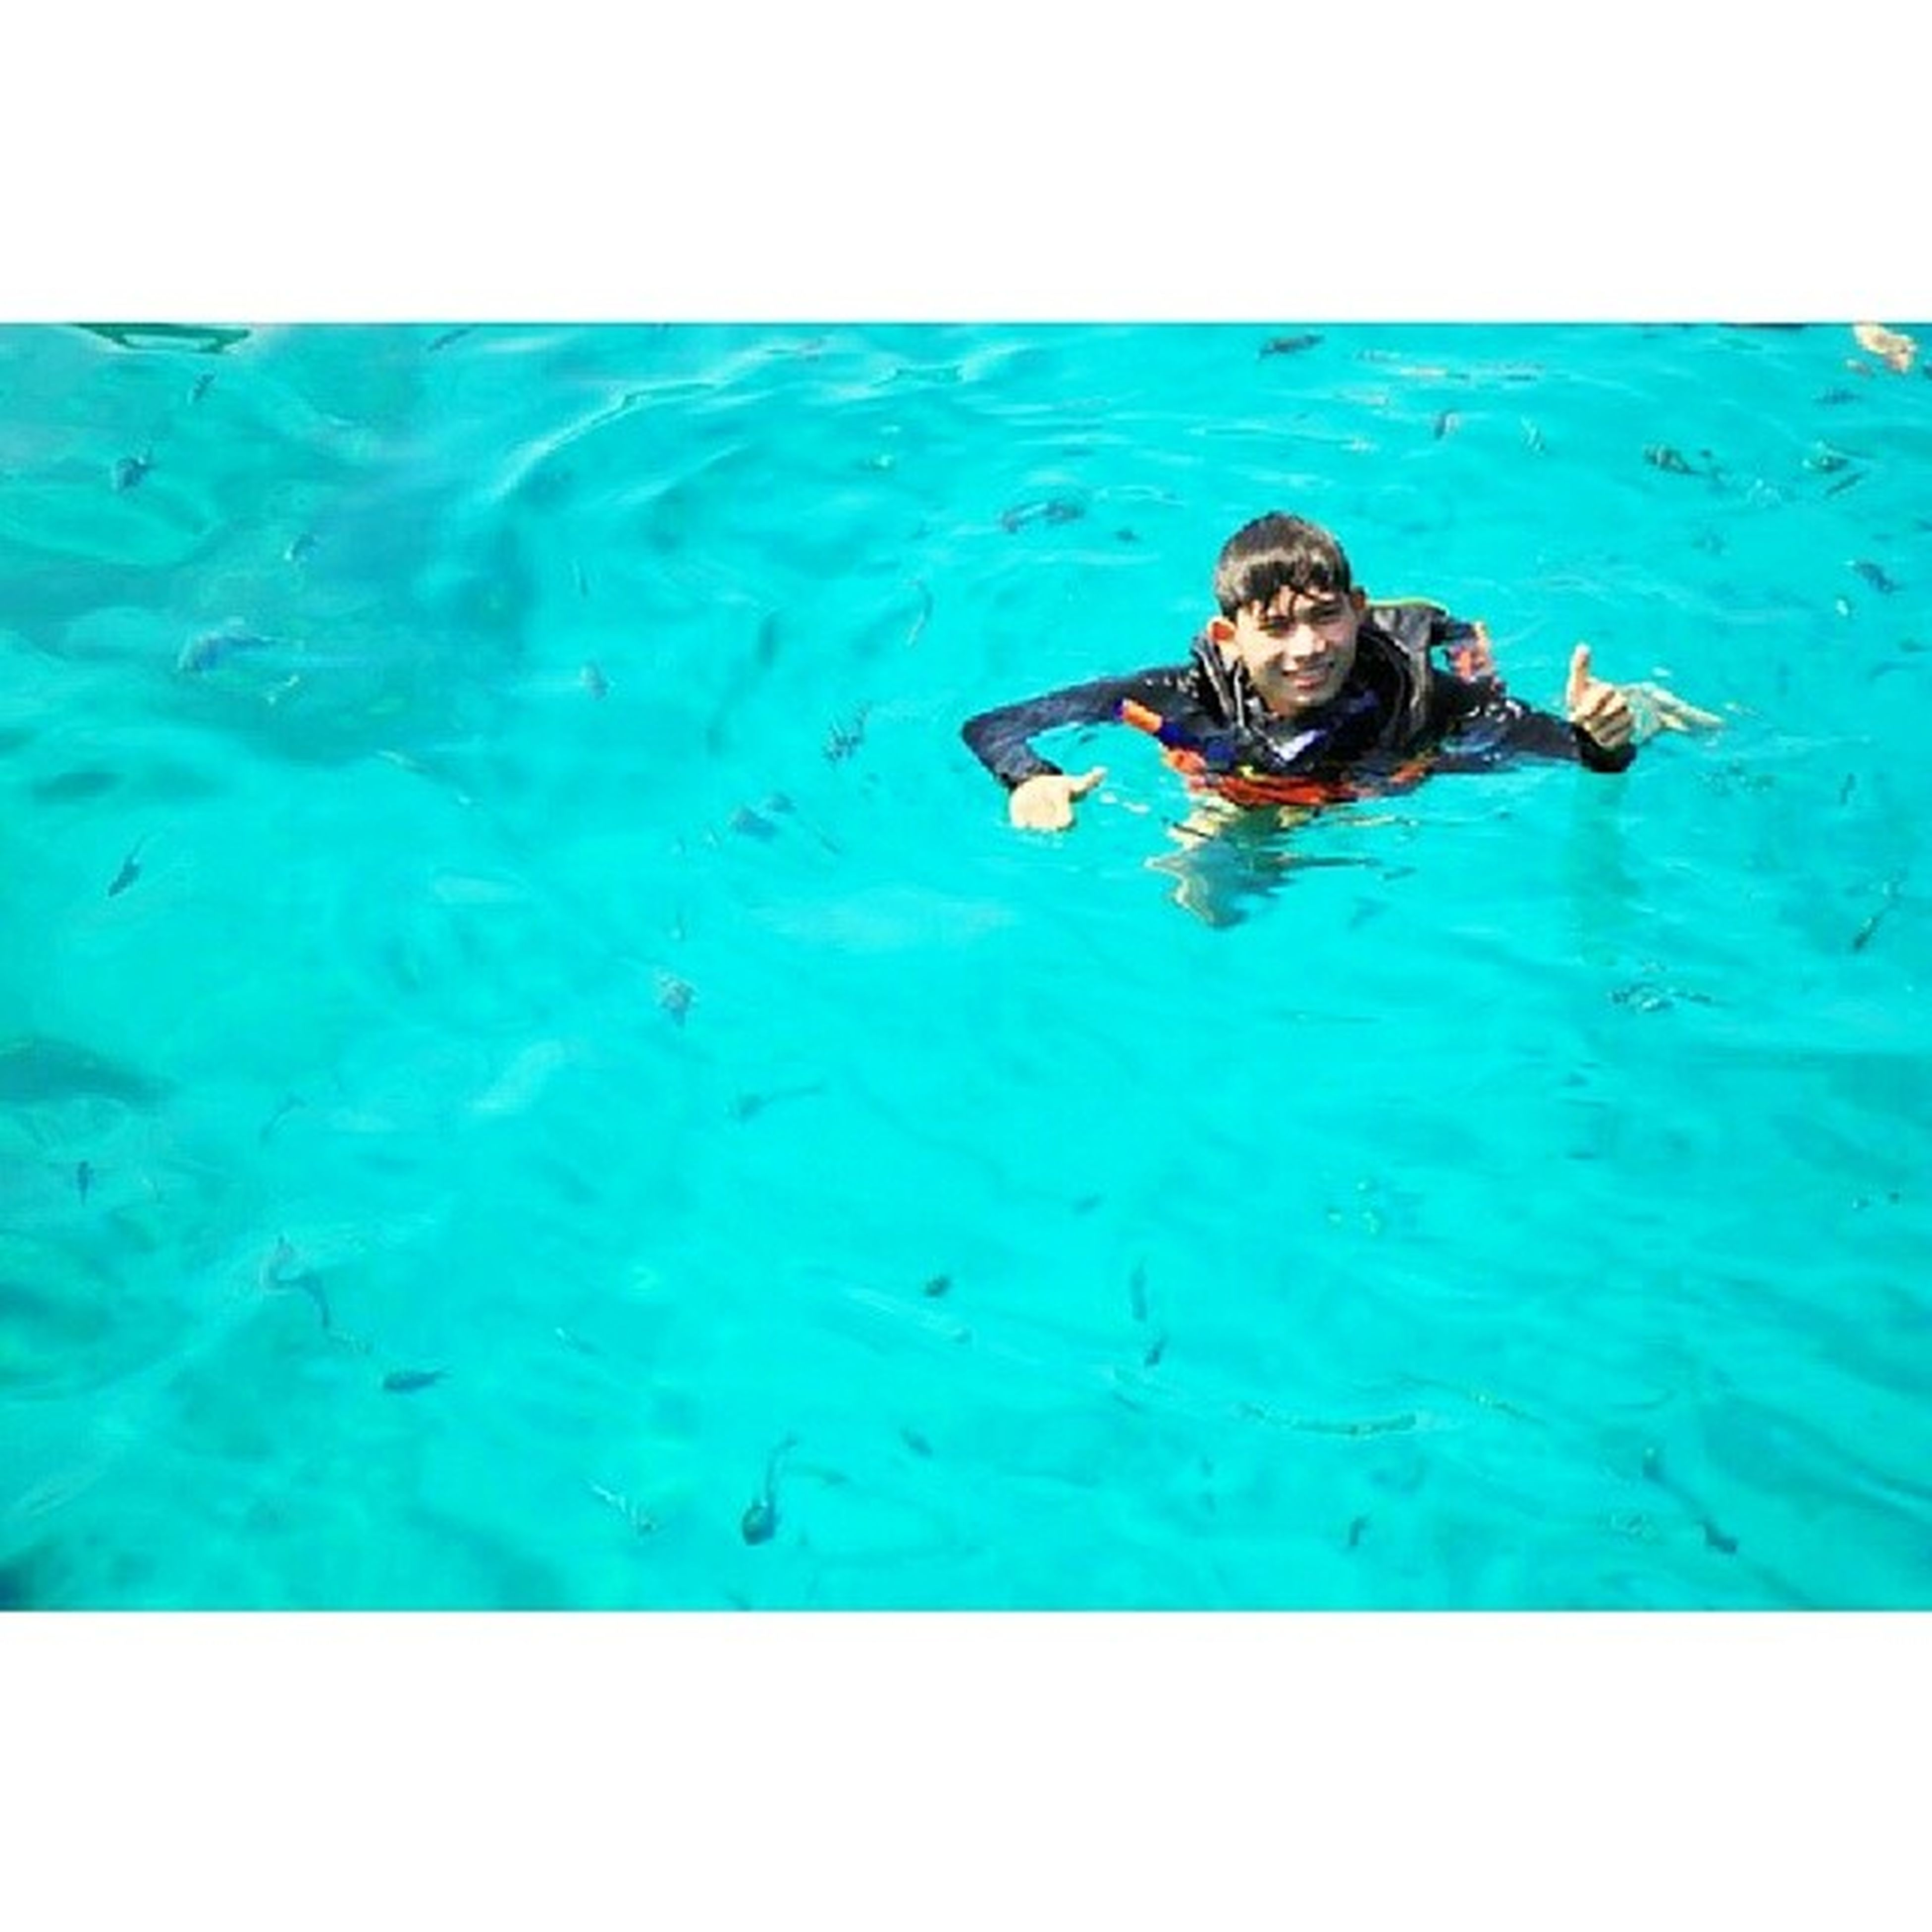 water, blue, animal themes, transfer print, swimming, one animal, sea, auto post production filter, full length, high angle view, wildlife, turquoise colored, swimming pool, animals in the wild, sitting, day, waterfront, nature, underwater, one person